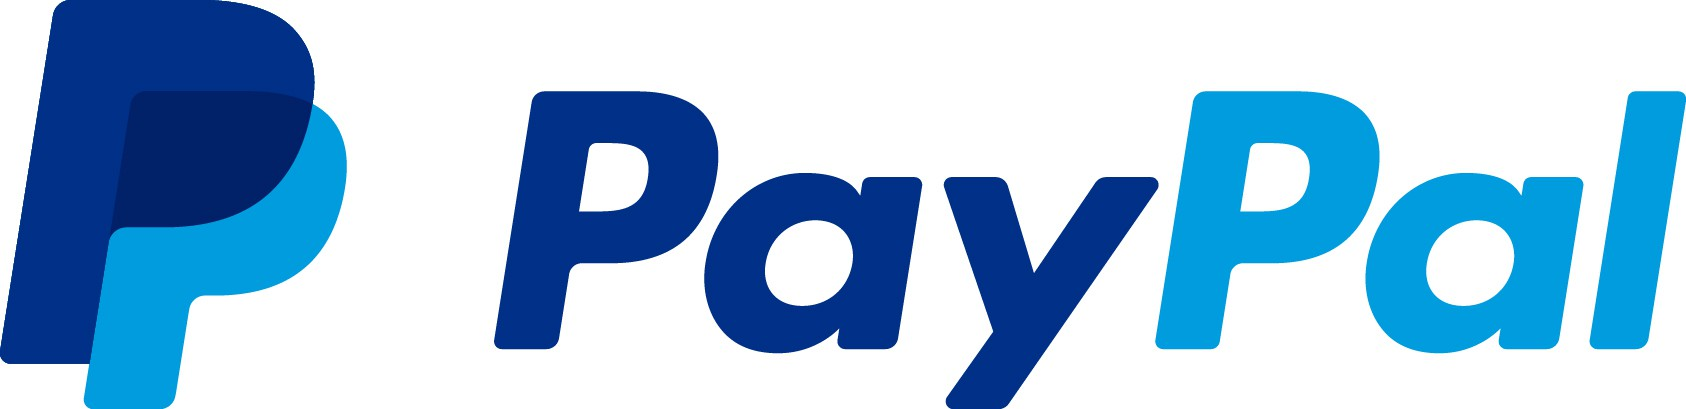 https://www.paypal.com/